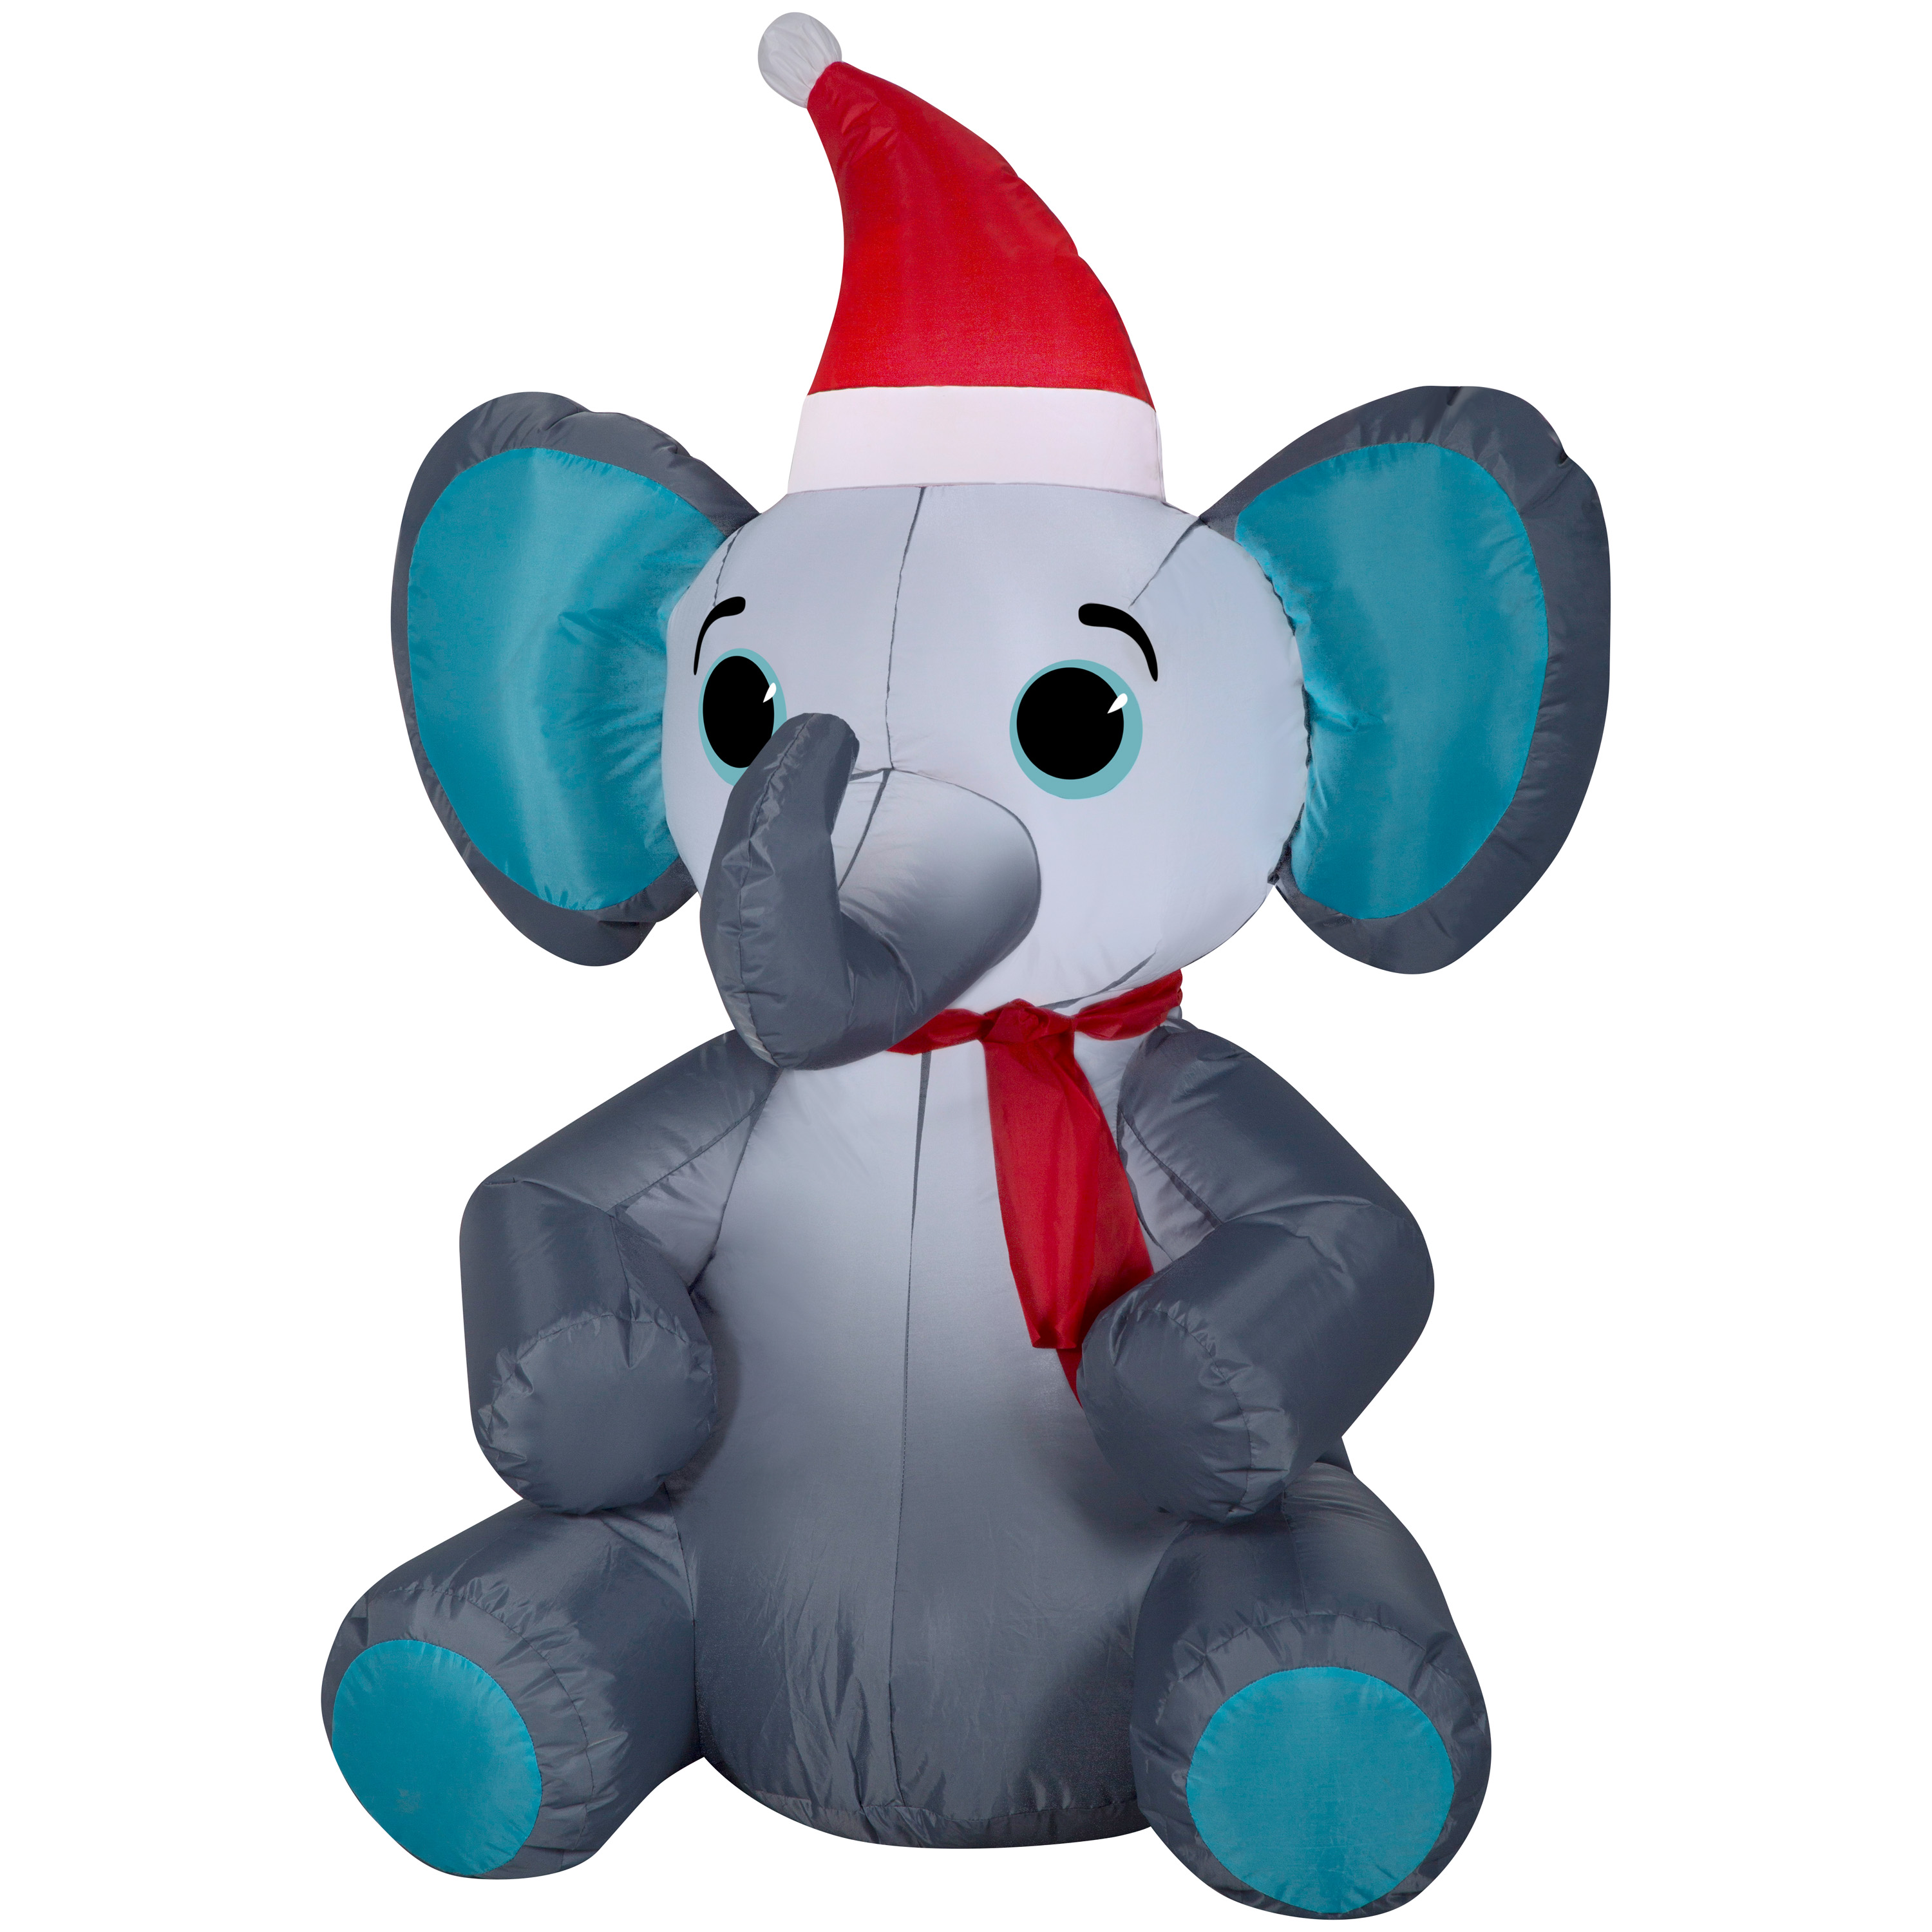 Airblown Christmas Inflatable Elephant 3.5' Tall